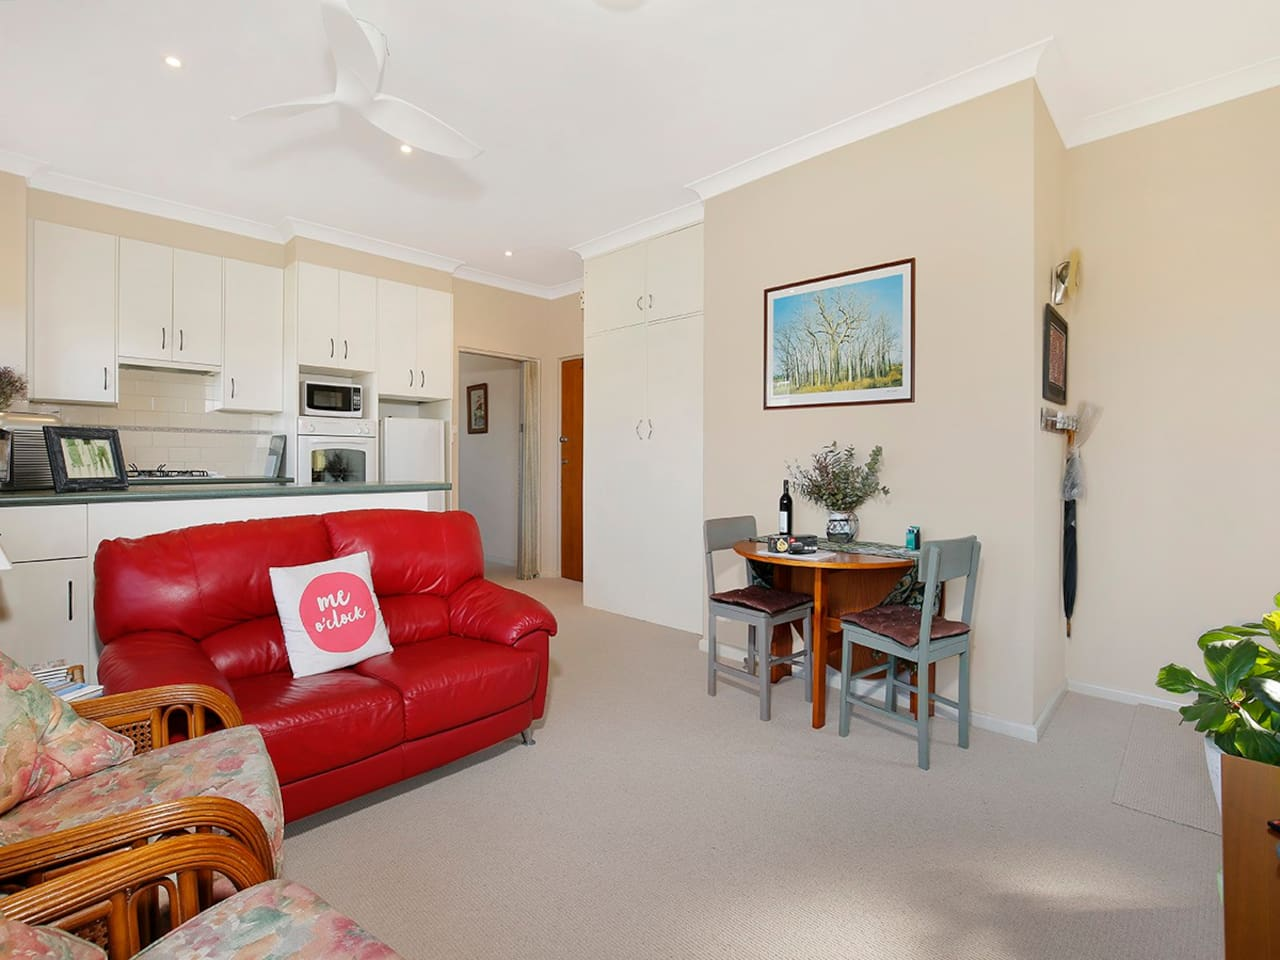 Light filled & airy living room, a perfect sanctuary from the hustle & bustle of city & sightseeing